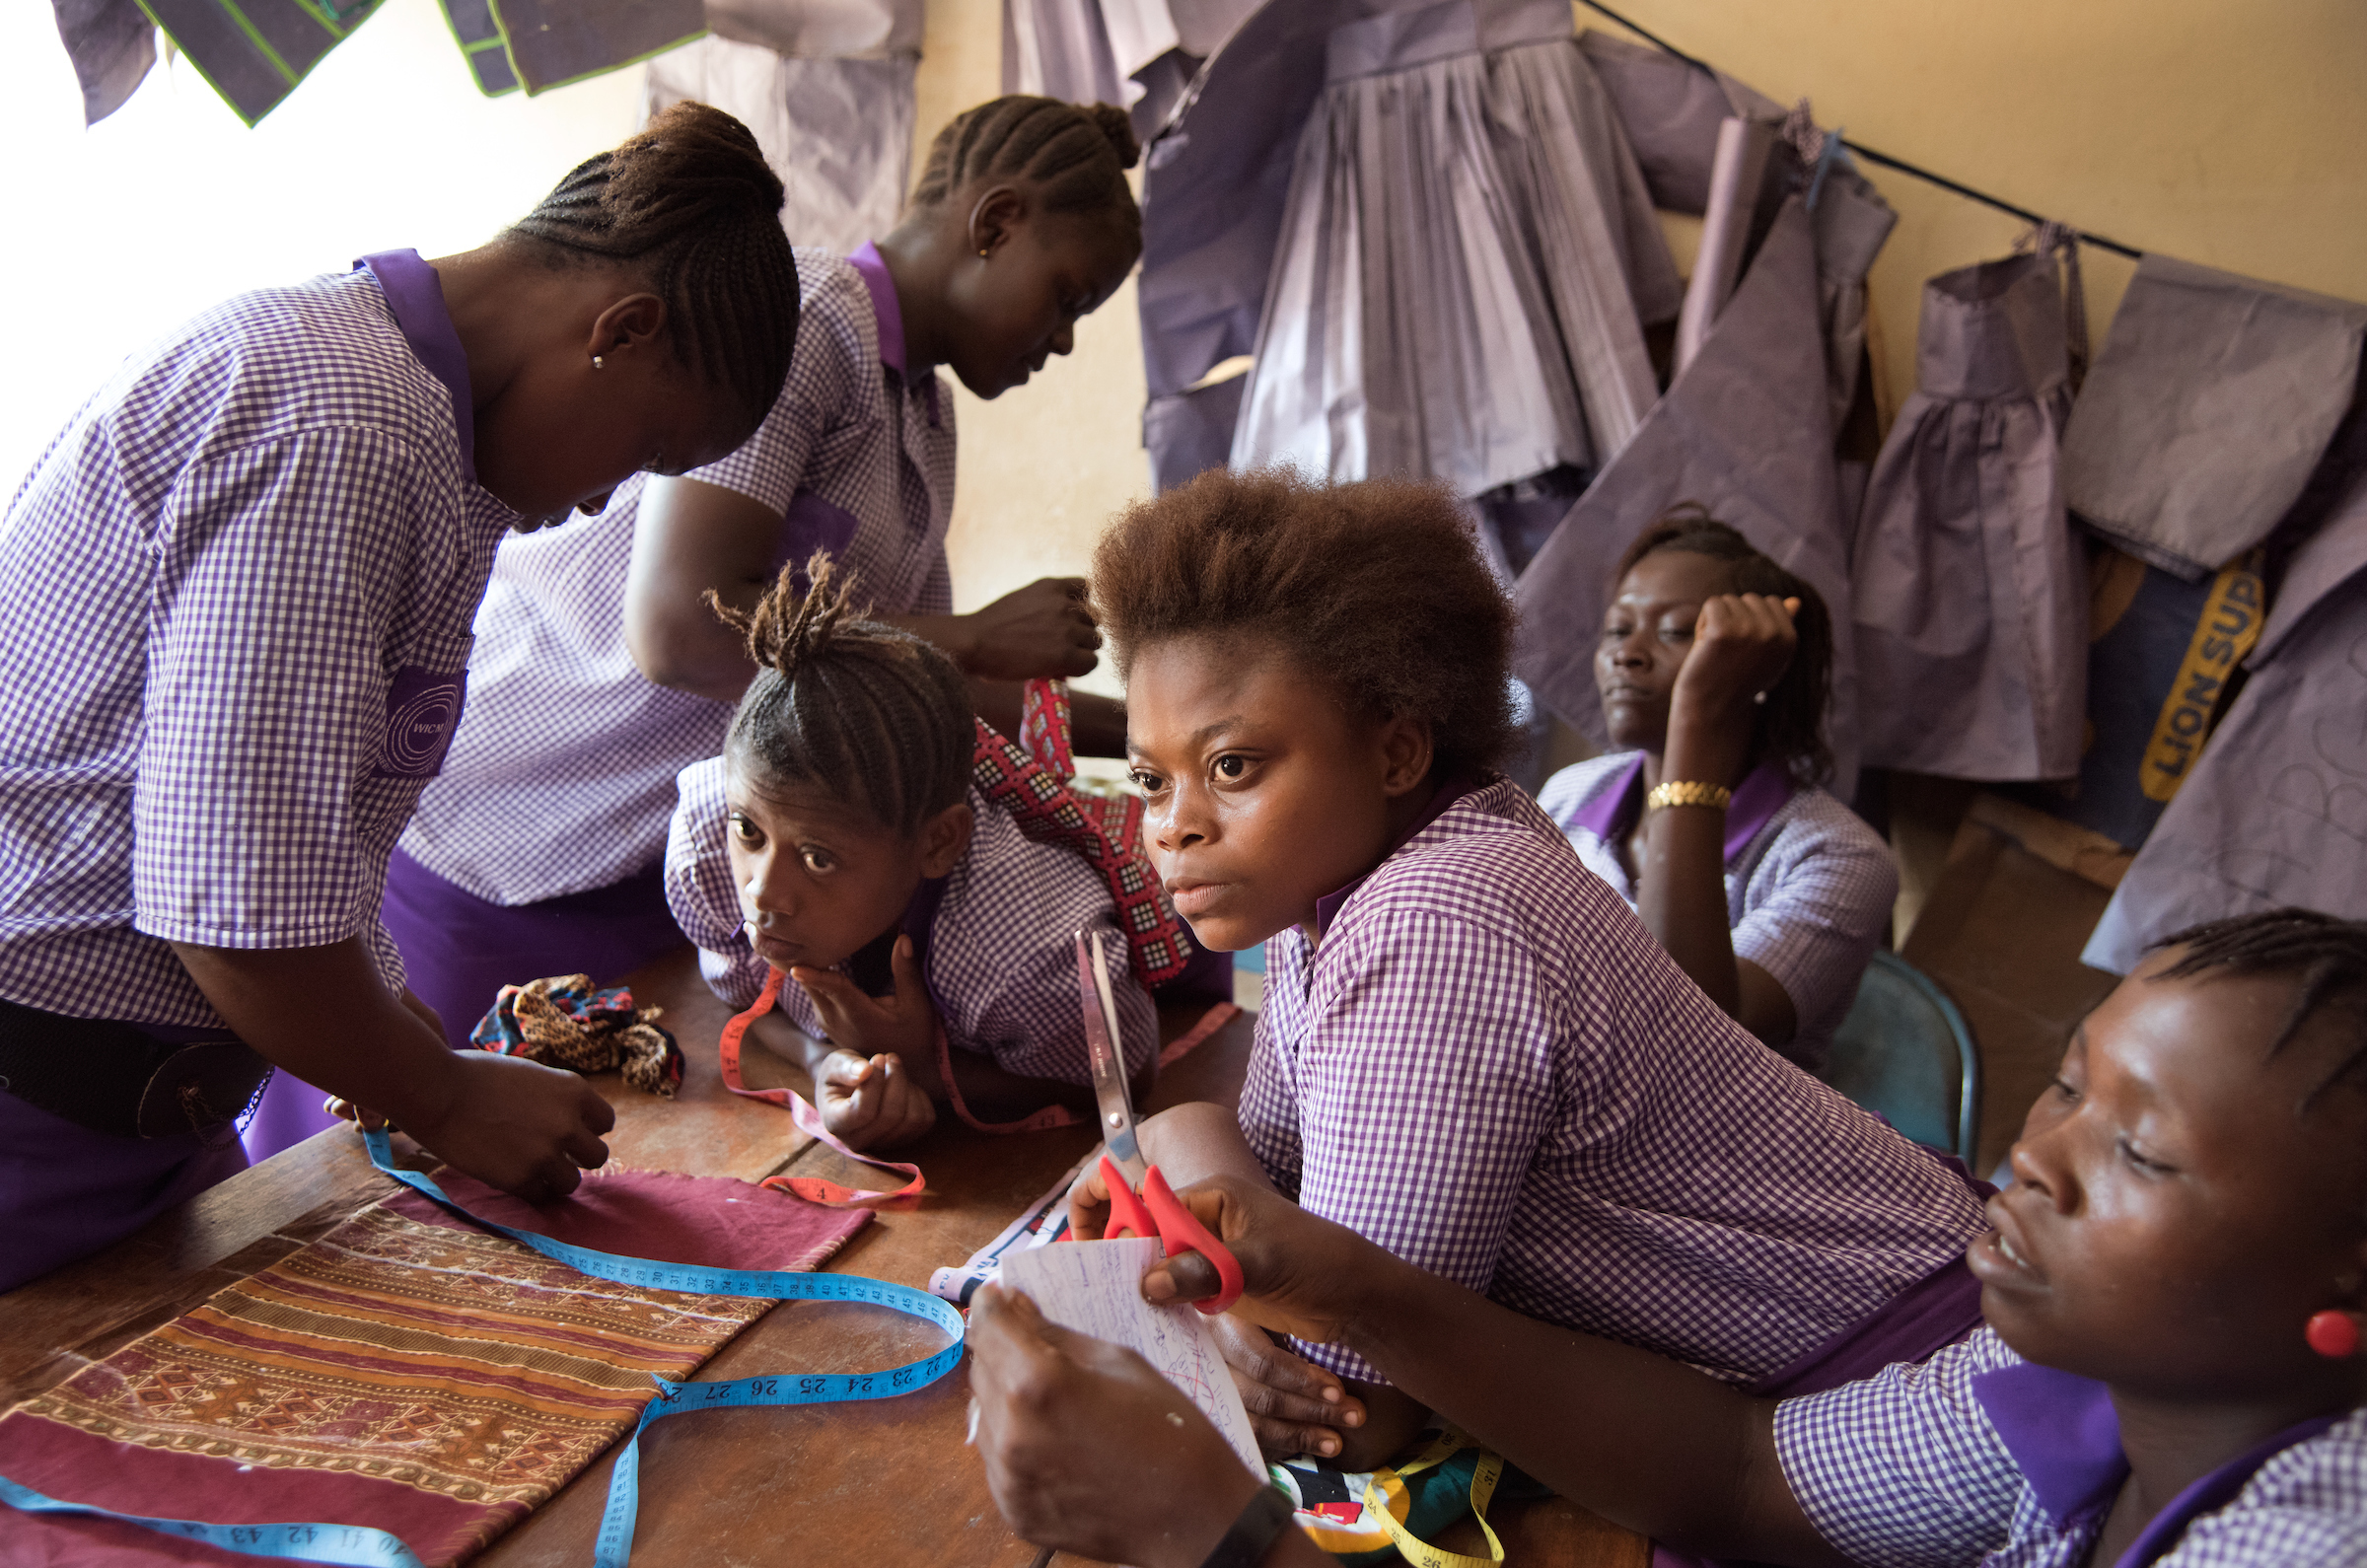 Adolescent girls take part in sewing classes offered by Women in Crisis in Freetown, Sierra Leone.